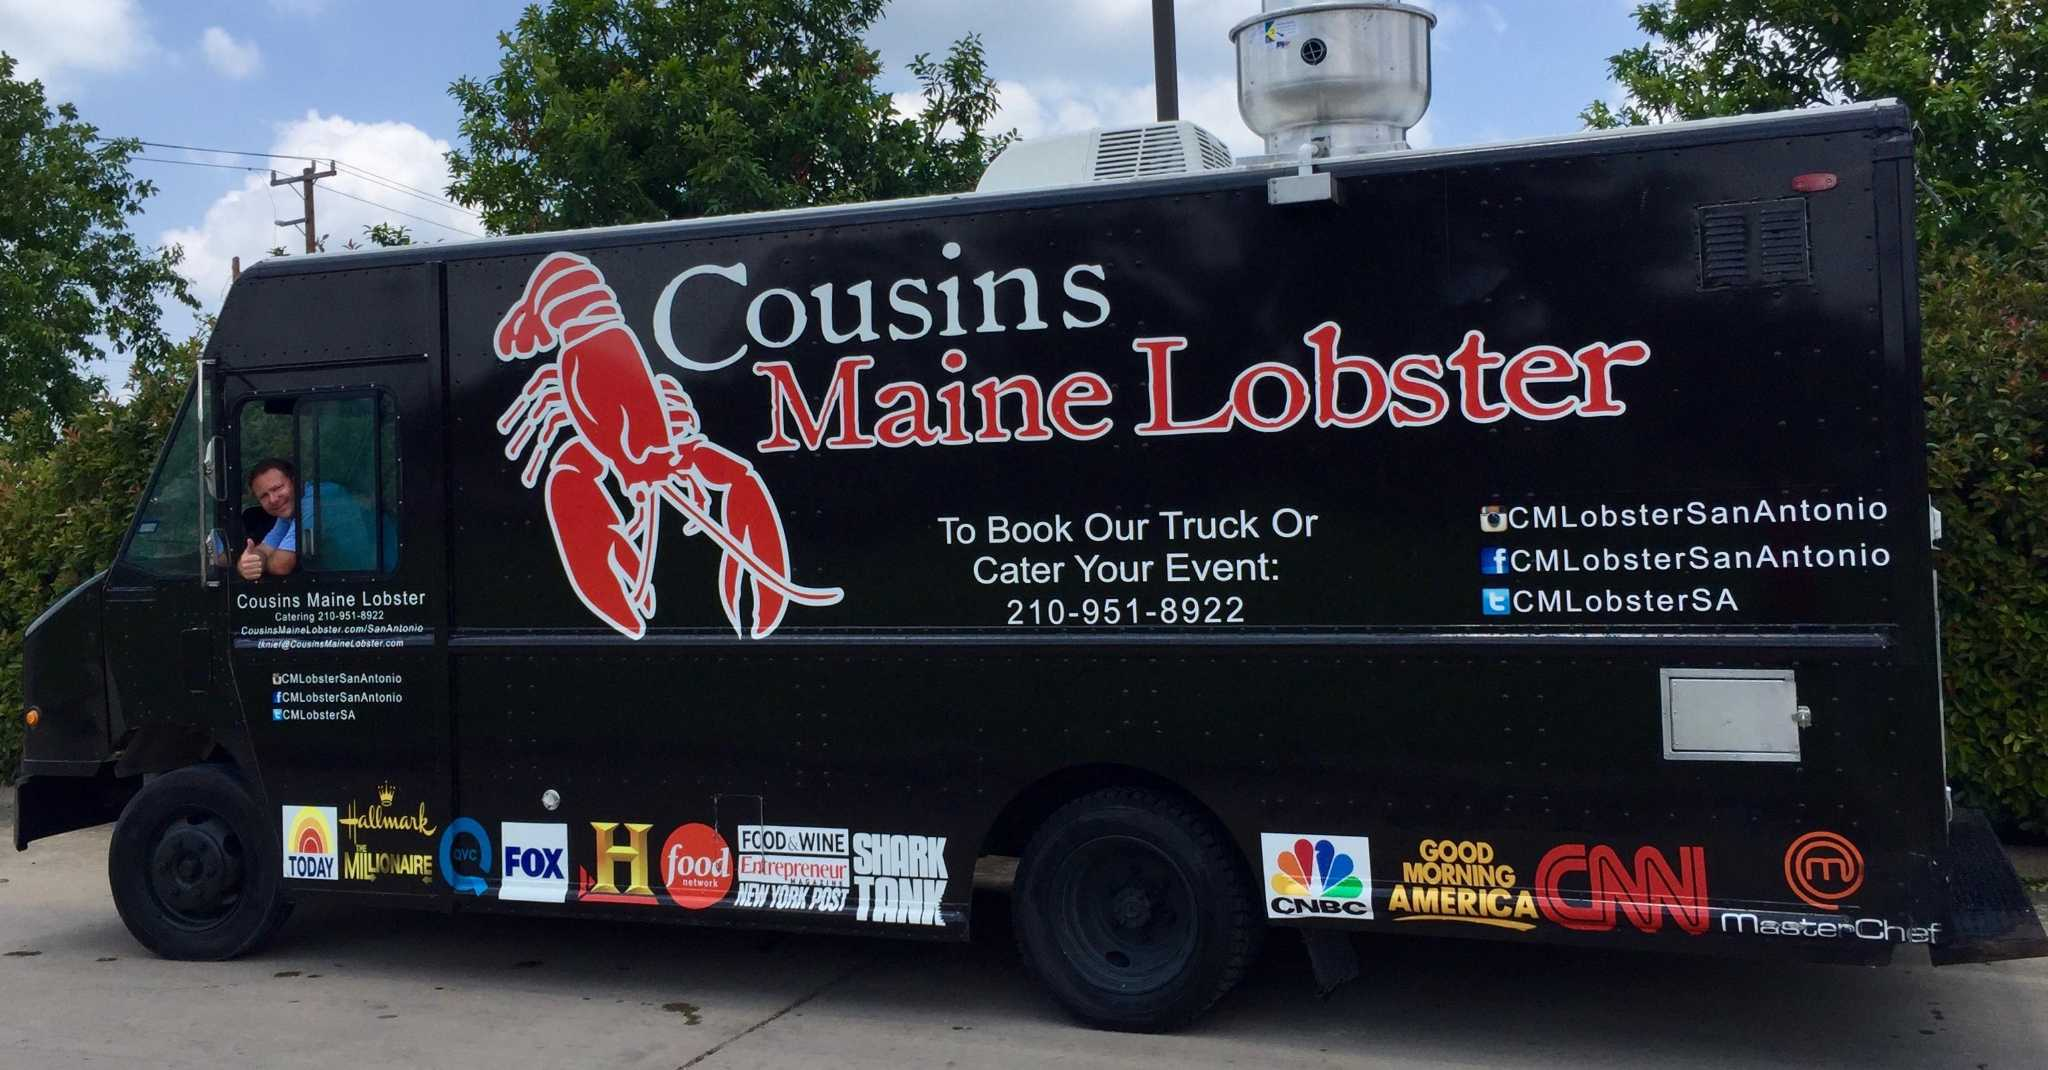 Cousins maine lobster wins the 2017 critics choice for best food truck san antonio express news